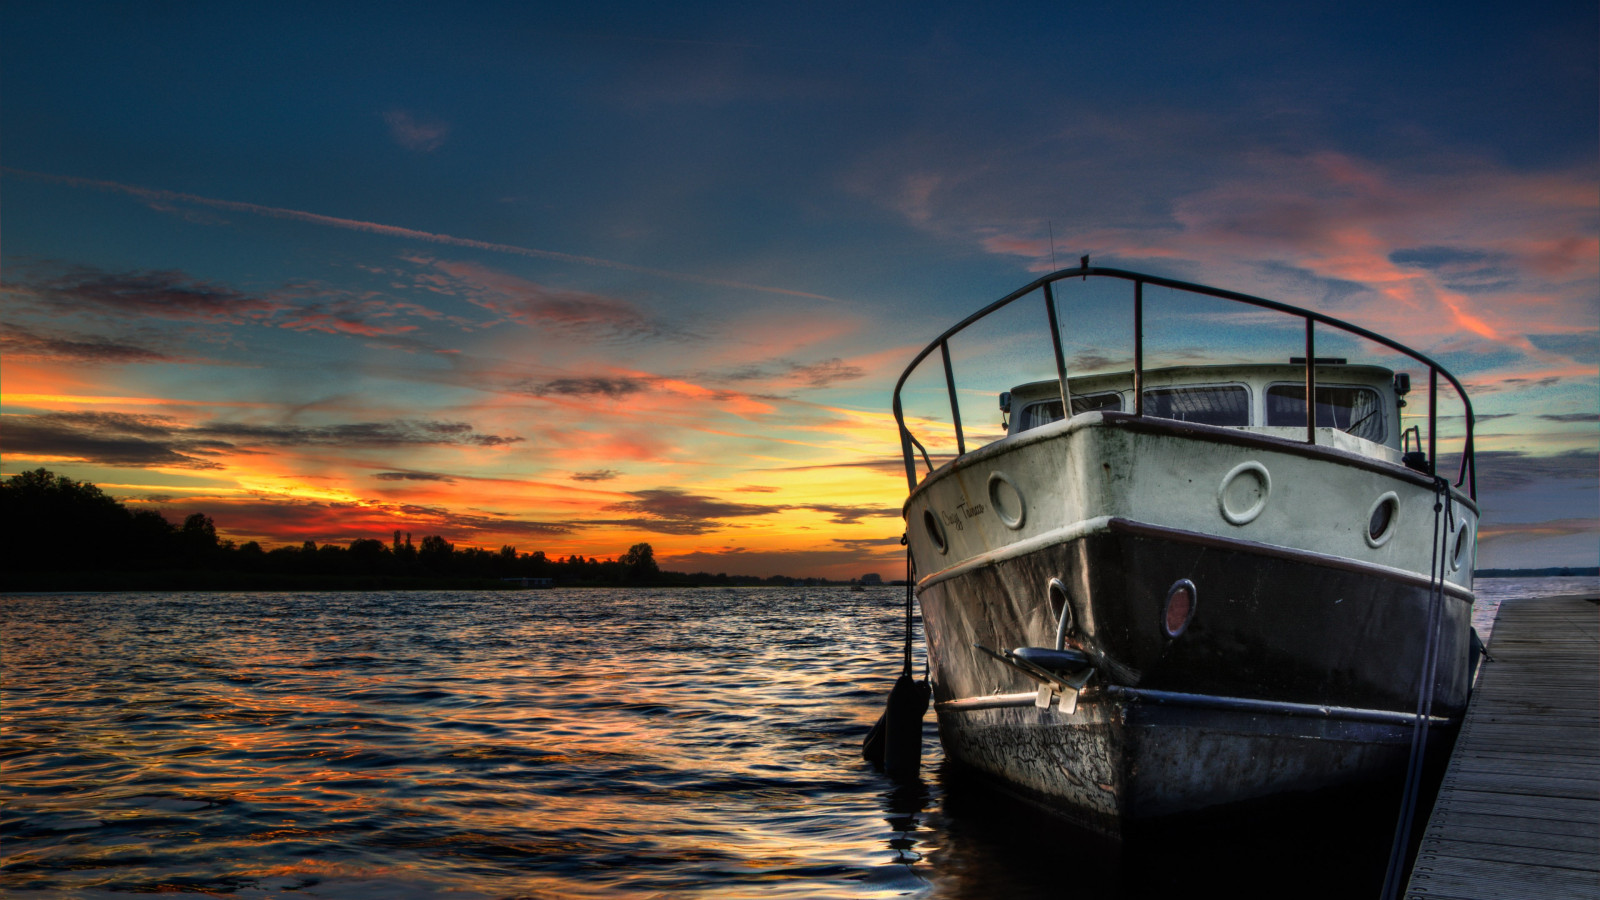 Boat and sunset in background wallpaper 1600x900